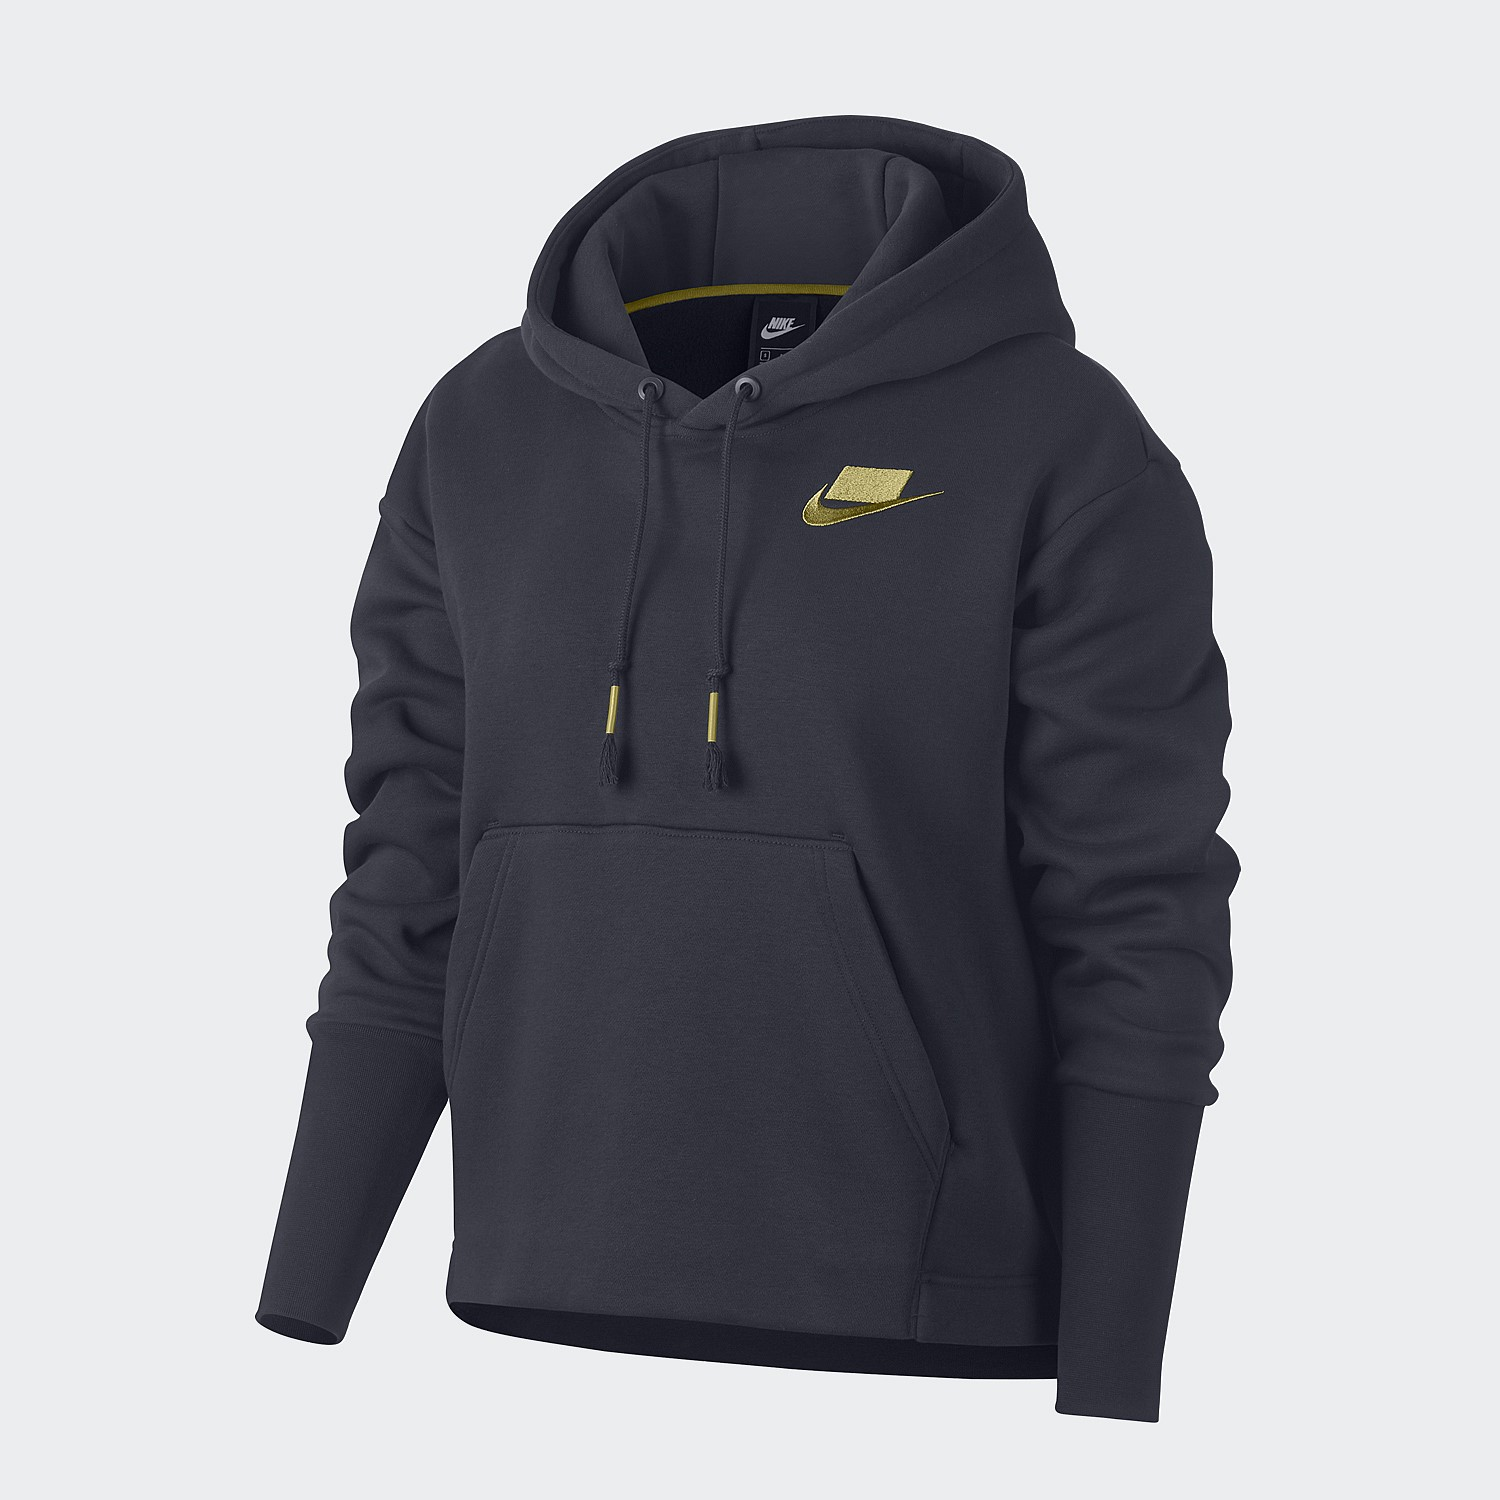 cbd1a99c7e3 Nike | Shop Nike Training and Lifestyle Clothing, Footwear and Accessories  | Stirling Sports - Fleece Hoodie